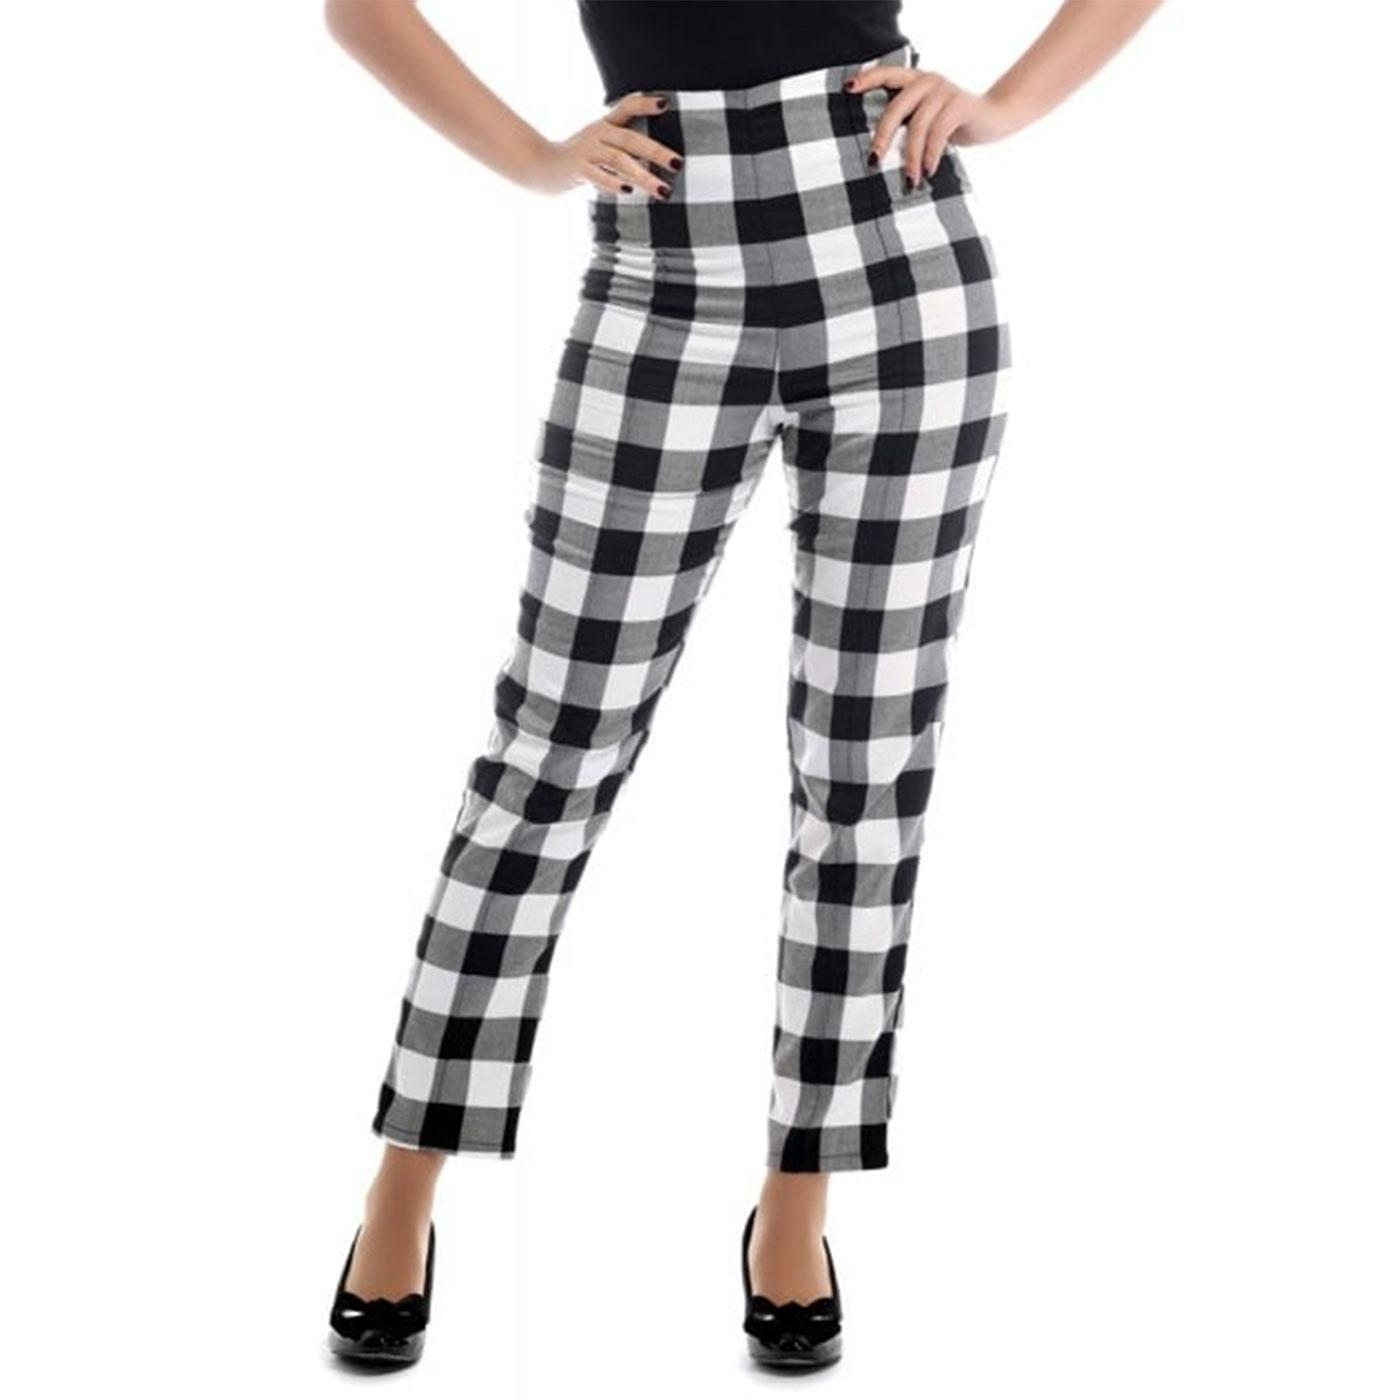 Bonnie COLLECTIF Retro Gingham Cigarette Trousers